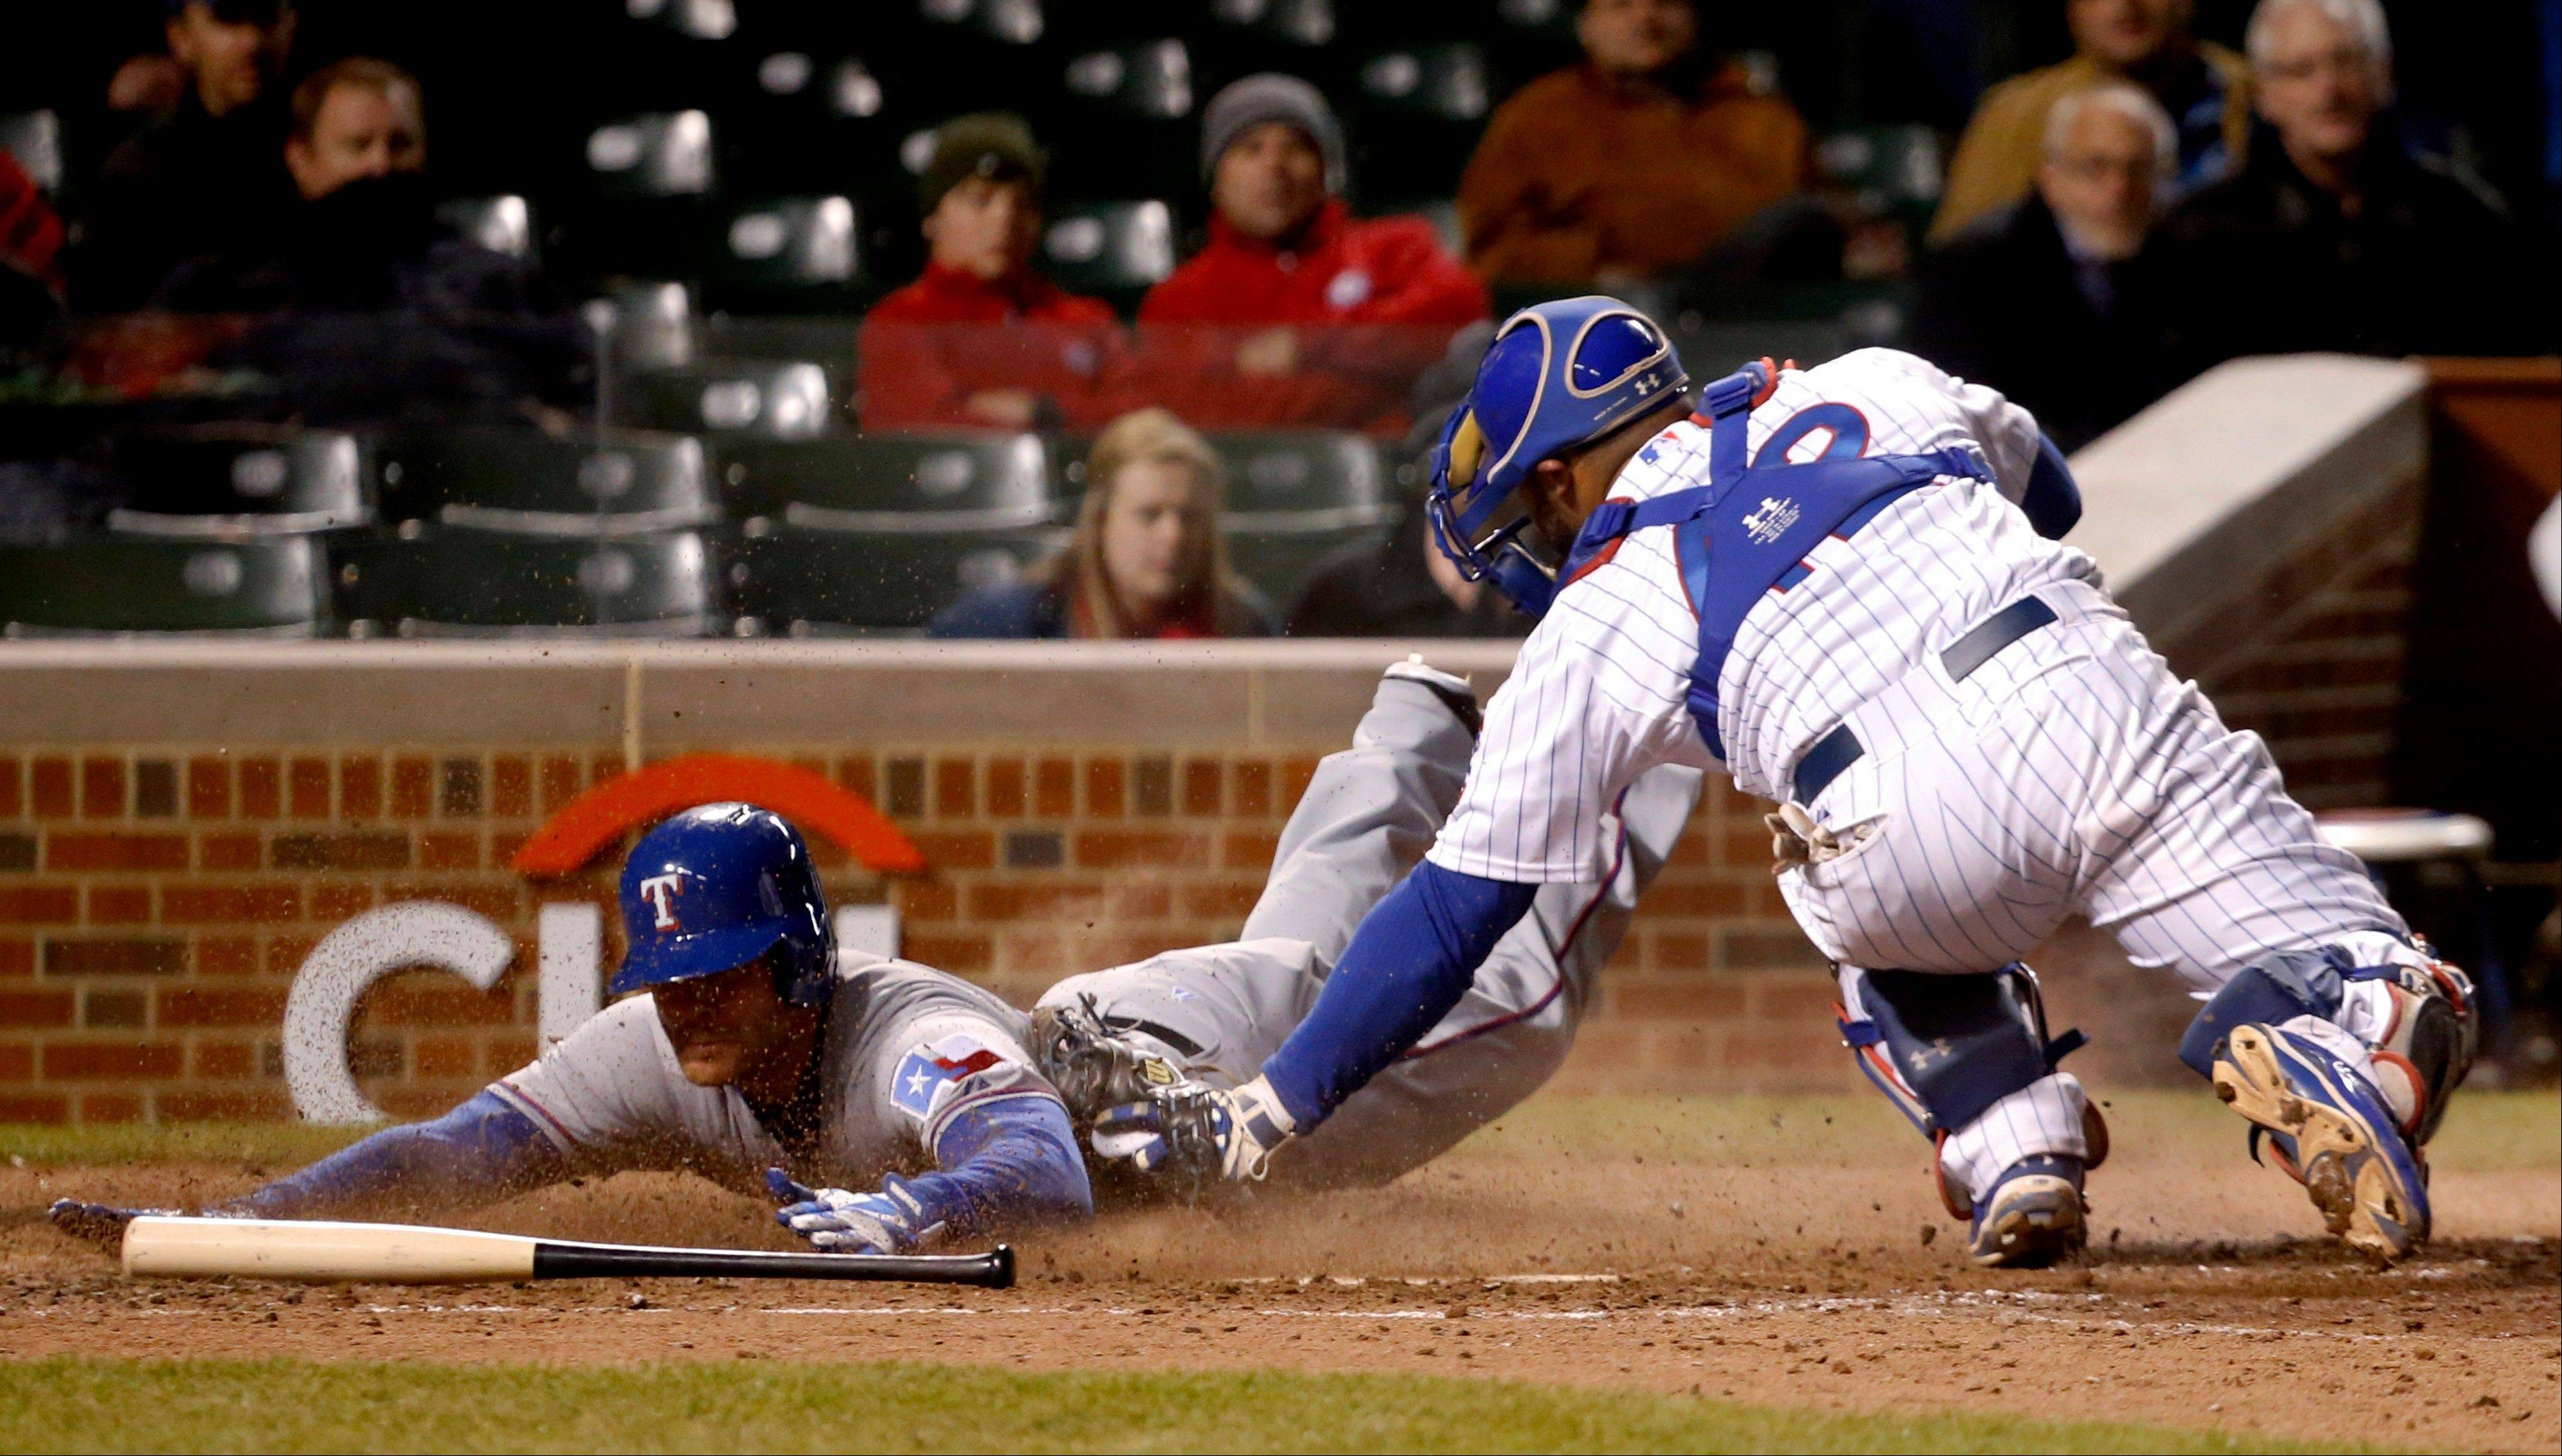 Cubs catcher Welington Castillo tags out Texas Rangers' Craig Gentry at home on a throw from first baseman Anthony Rizzo Tuesday night at Wrigley Field. The Cubs lost to the Rangers 4-2.